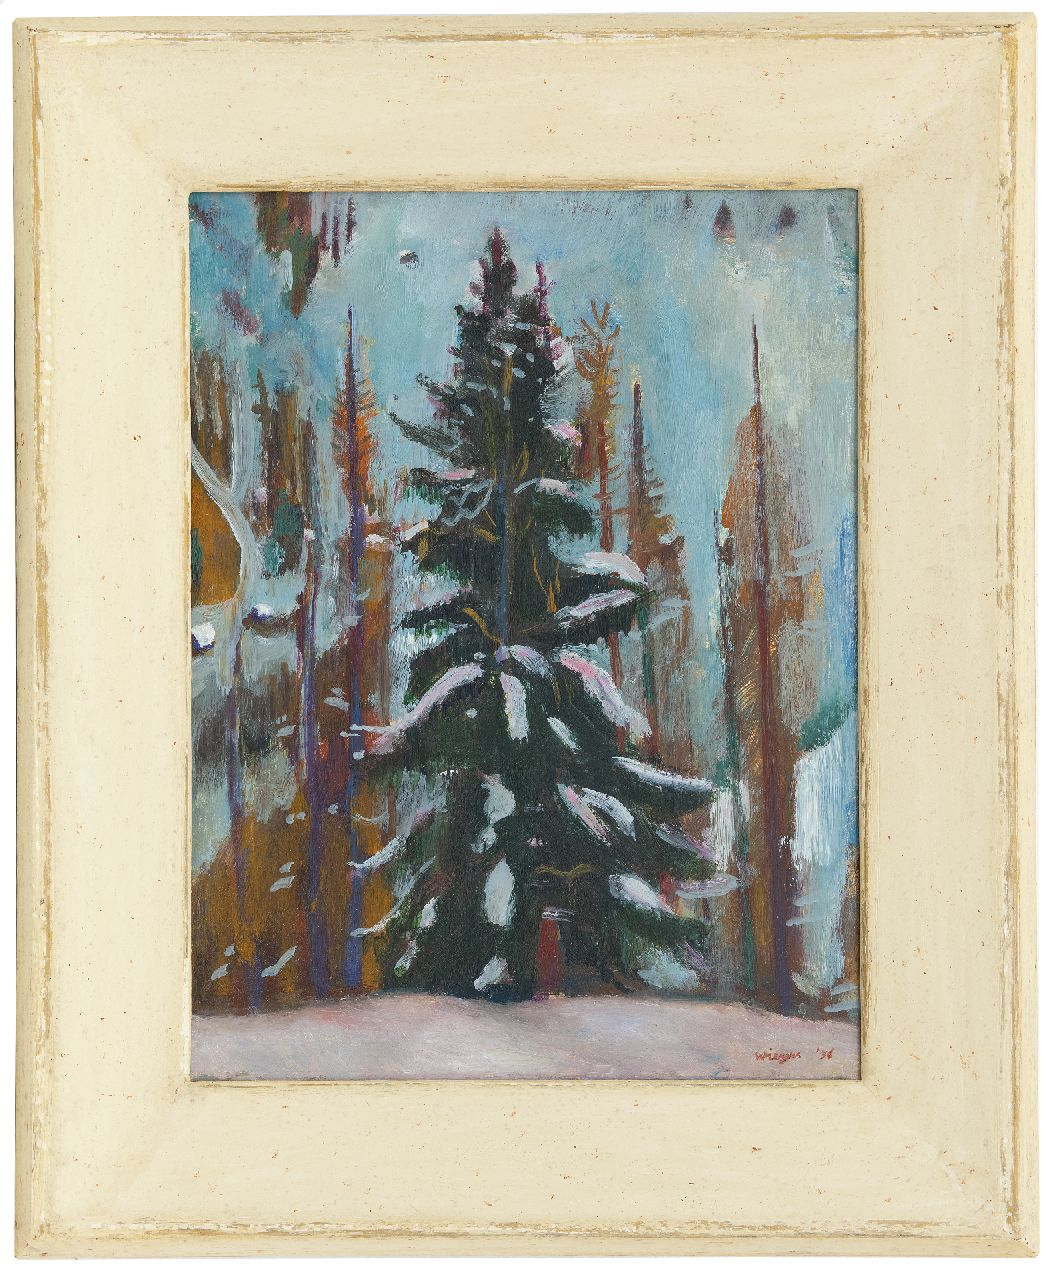 Wiegers J.  | Jan Wiegers | Paintings offered for sale | Fir, Frauenkirch (Davos), oil on panel 39.9 x 30.3 cm, signed l.r. and dated '36